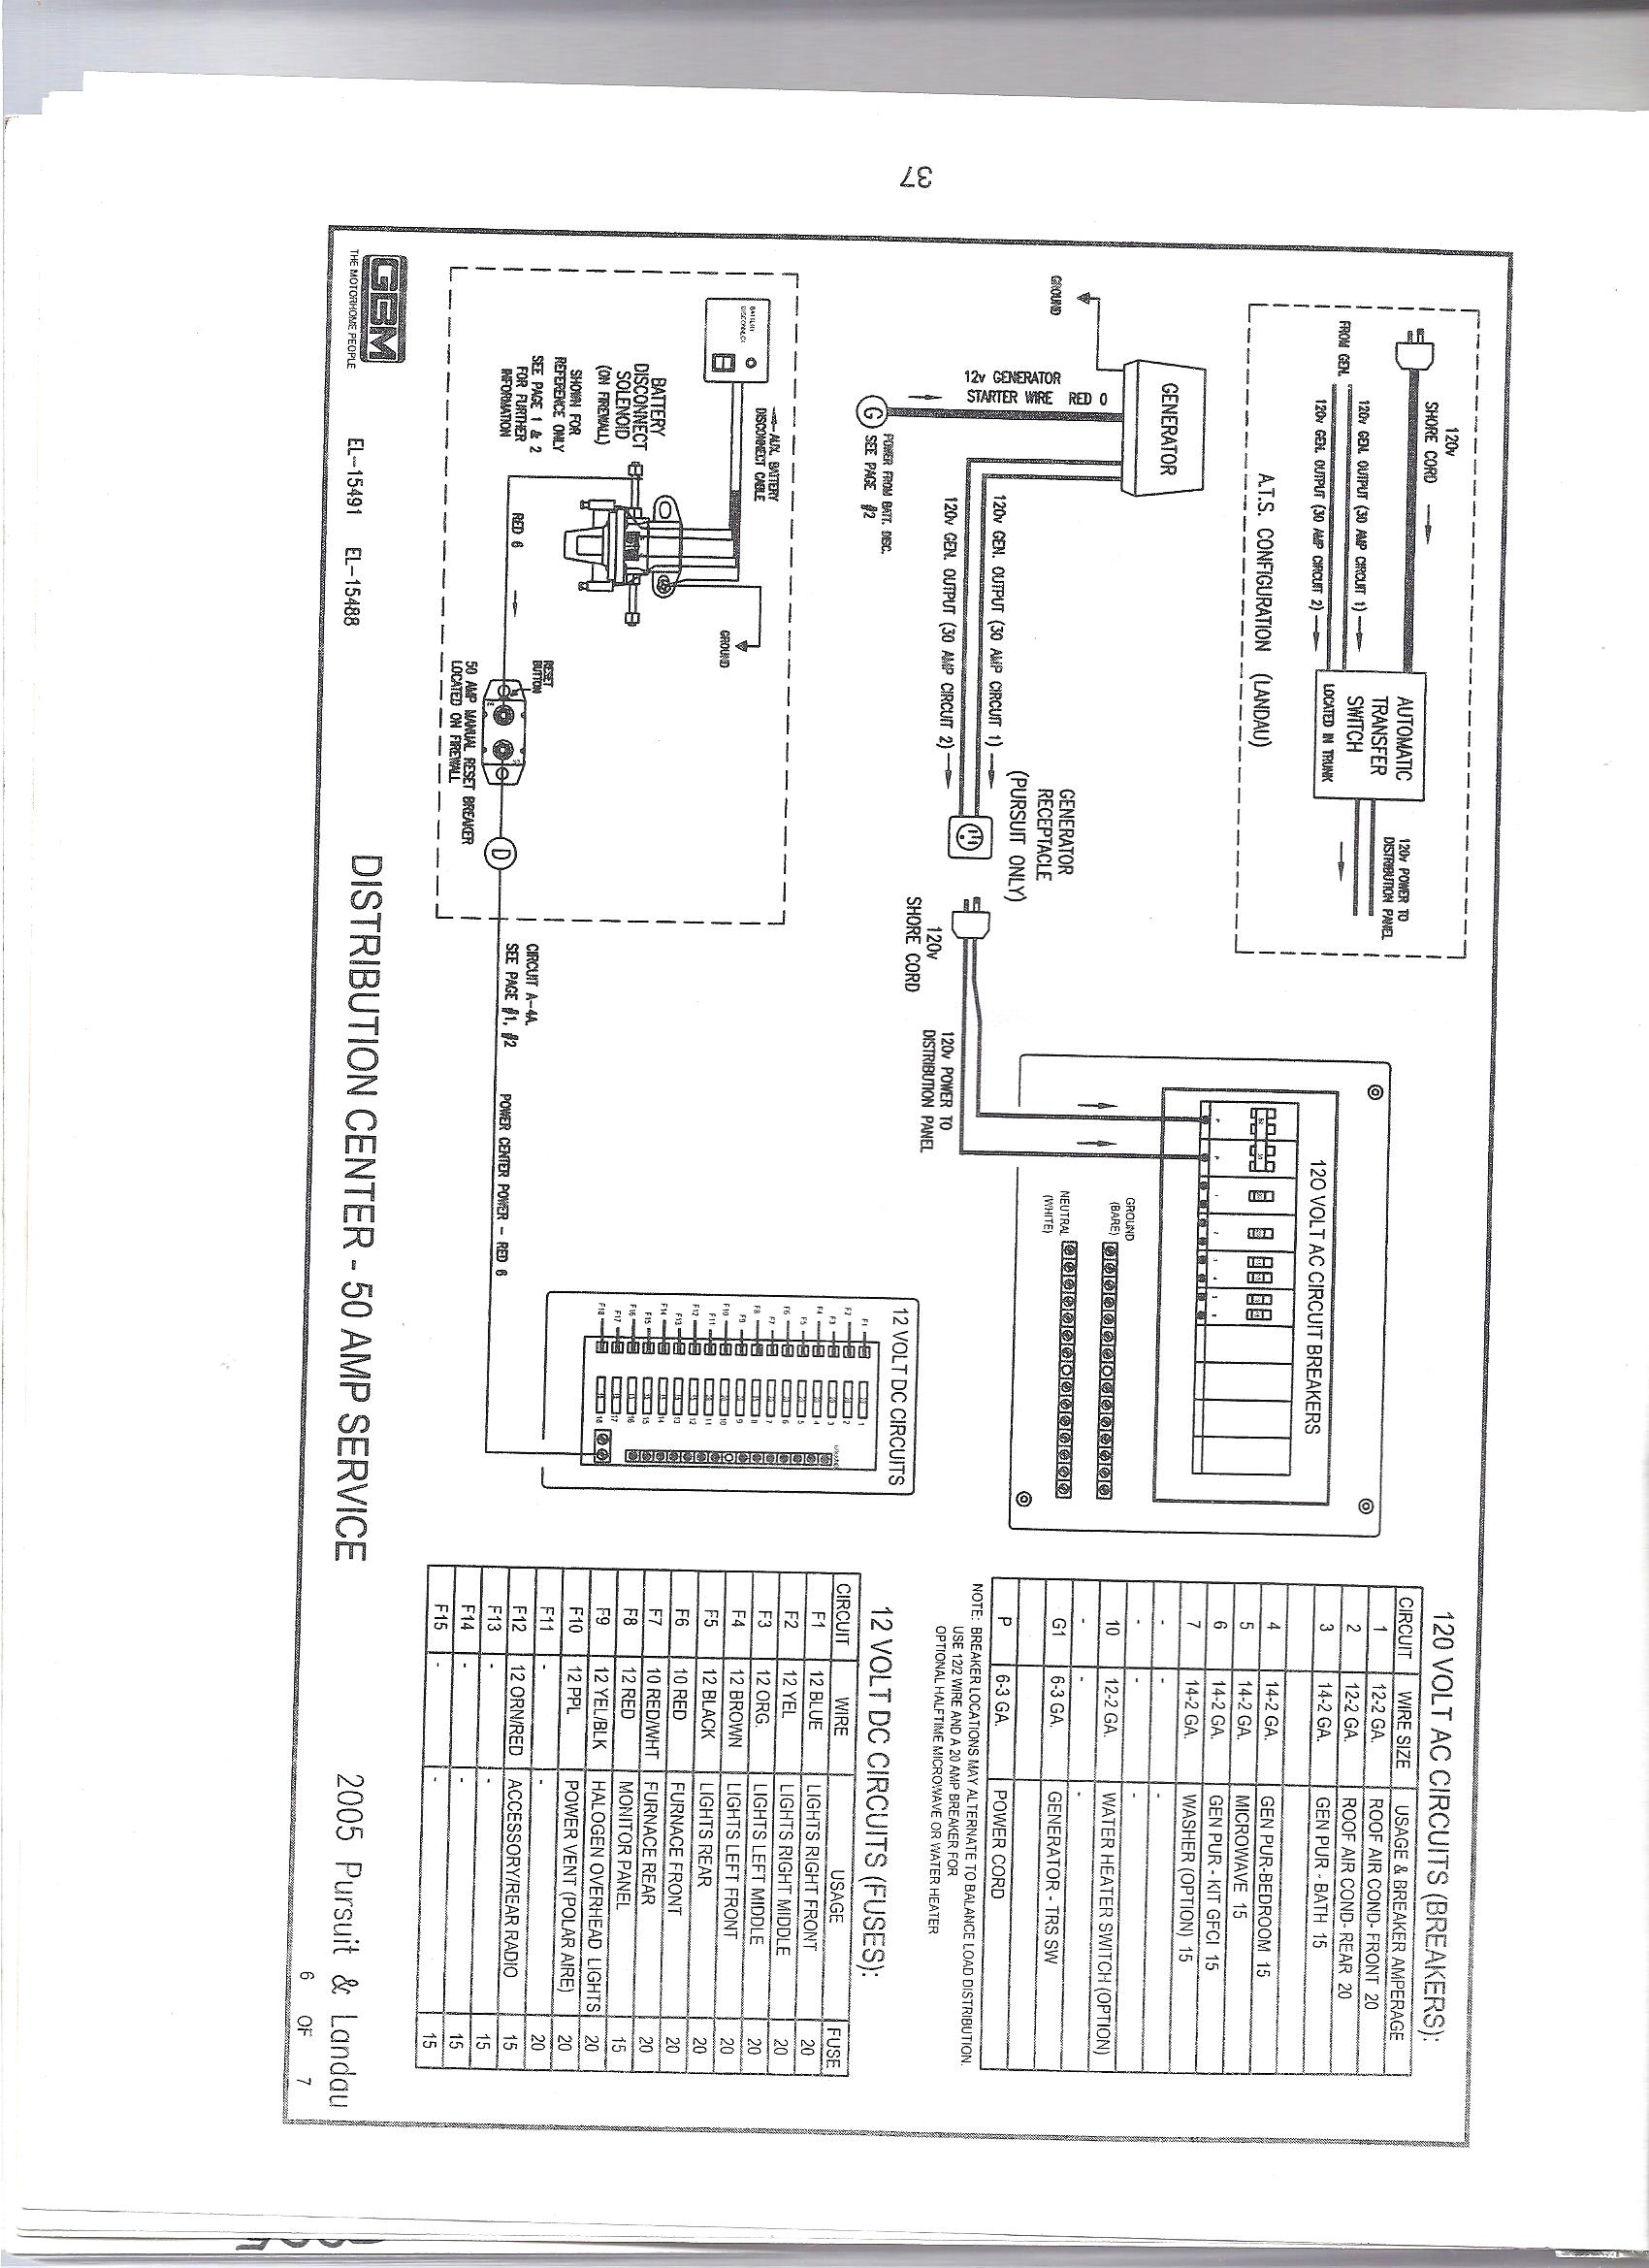 Ap900 Cruise Wiring Diagram 35 Wiring Diagram $ Download